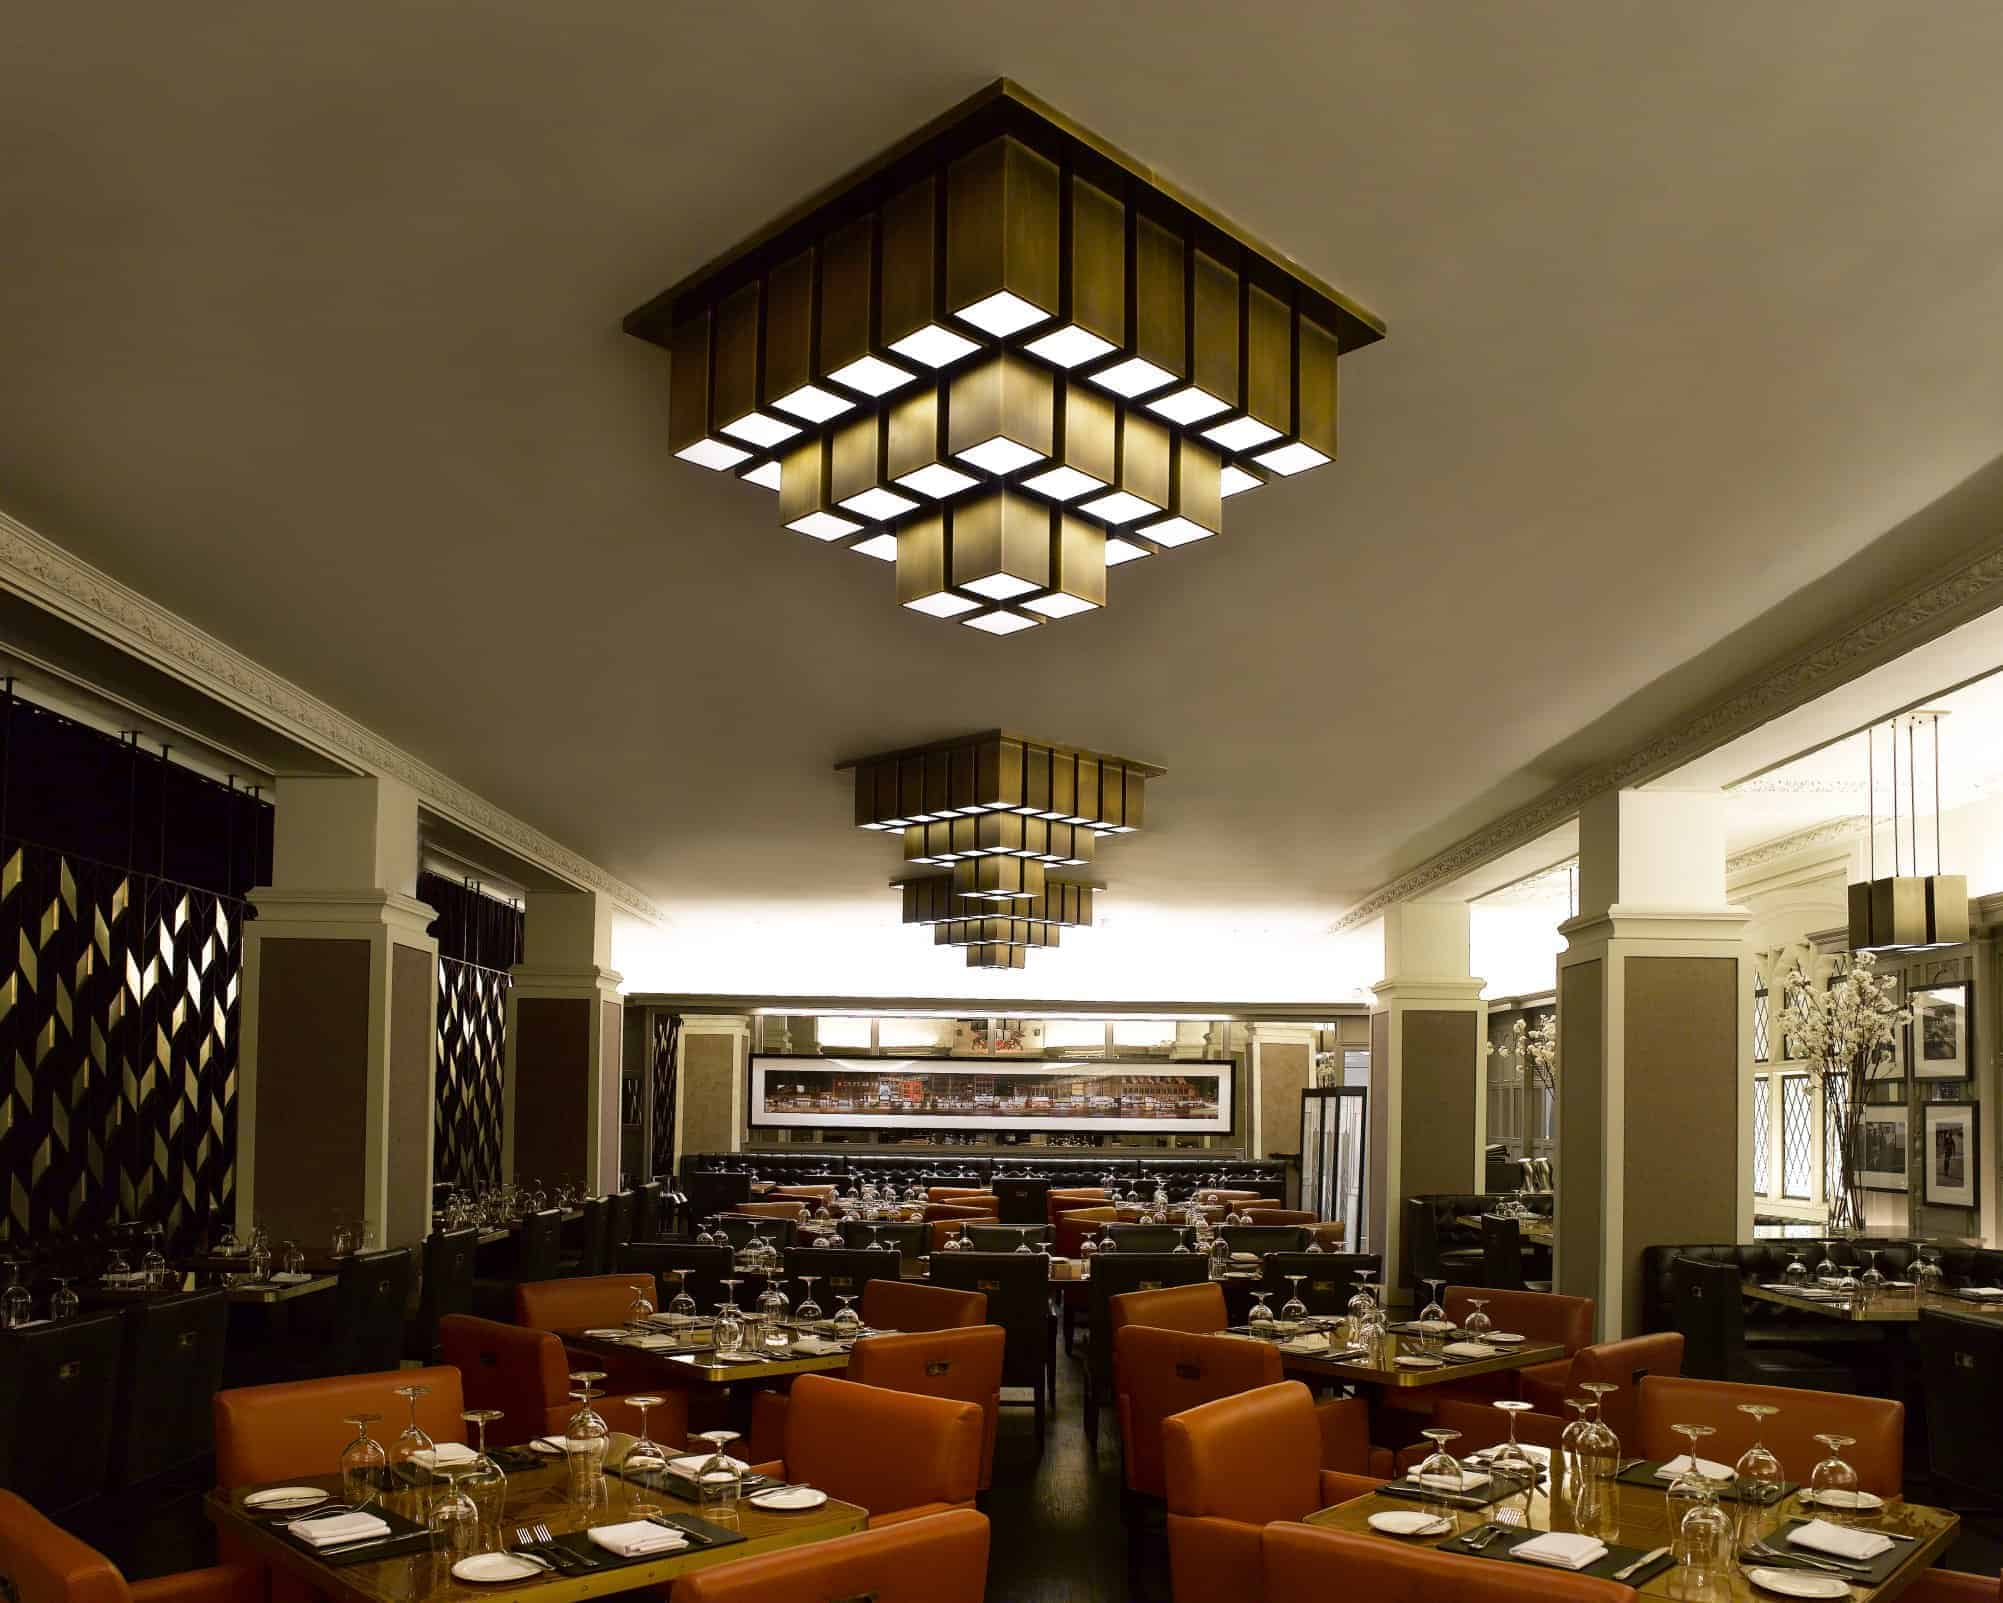 American cut restaurant midtown new york ny pty lighting for American cuisine new york